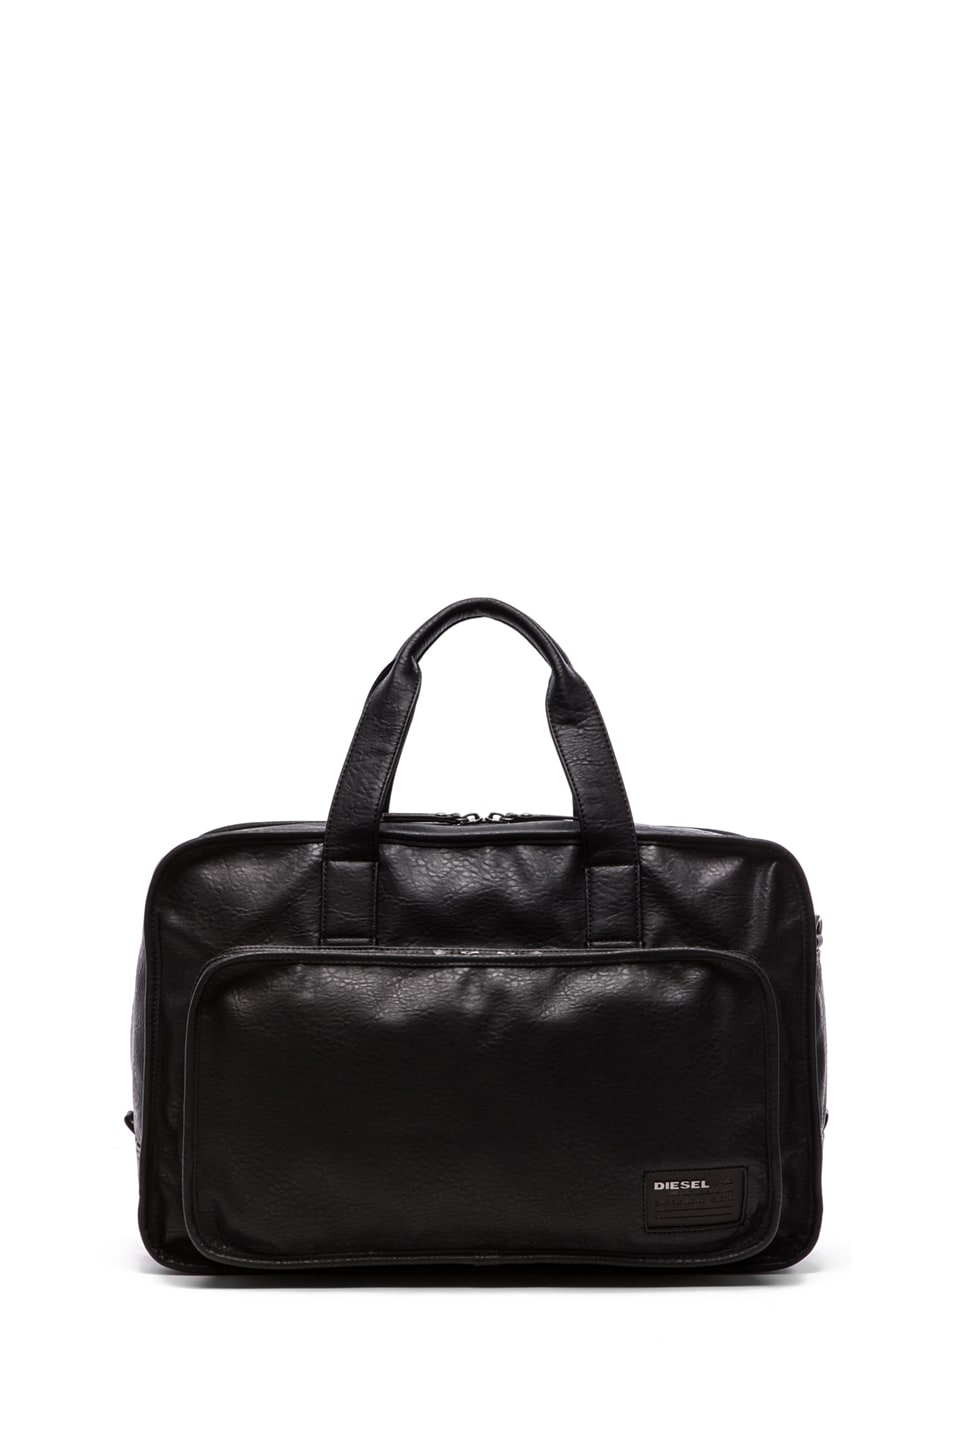 Diesel City to the Core Duffle in Black